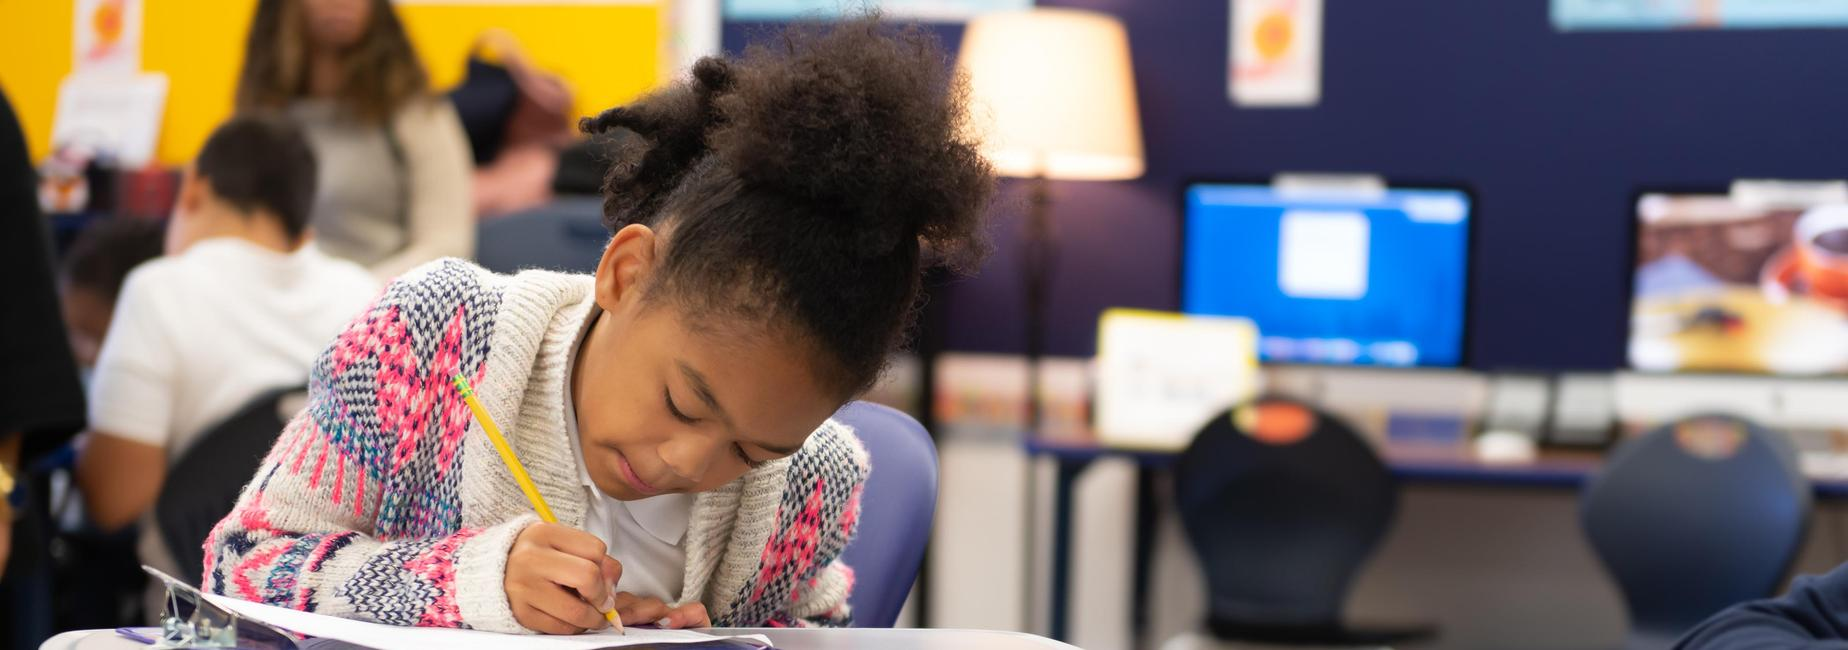 An elementary school student writing at a desk.